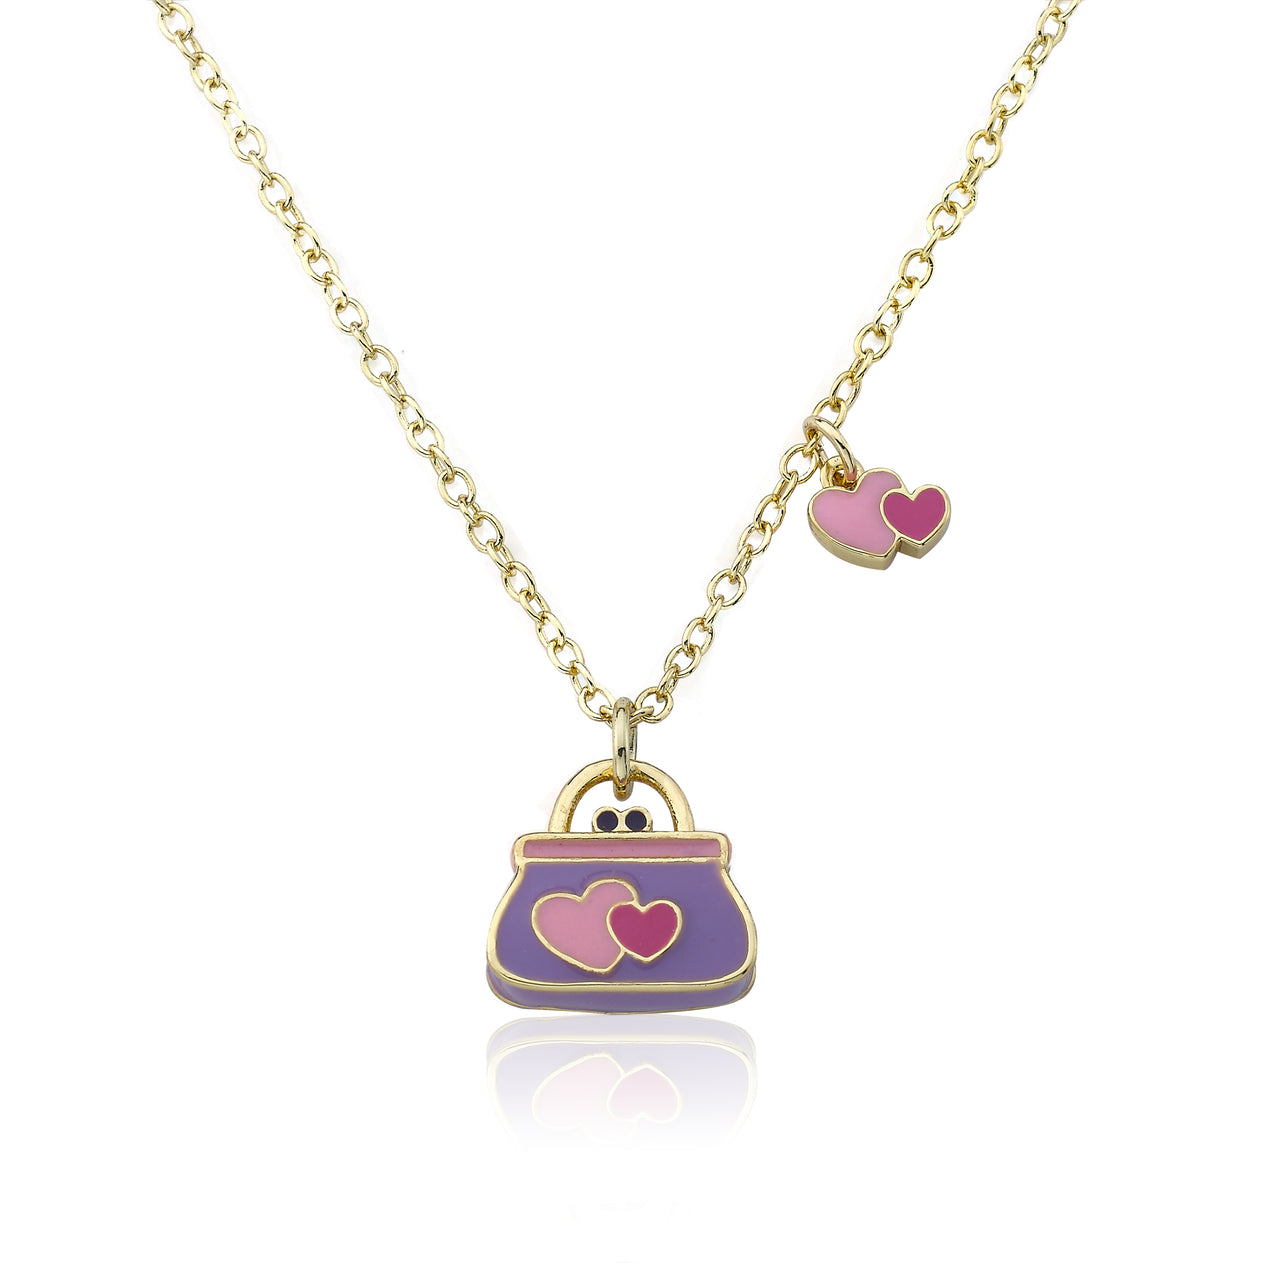 Shoebsessed Lavender Purse With Enamel Hearts Pendant Necklace